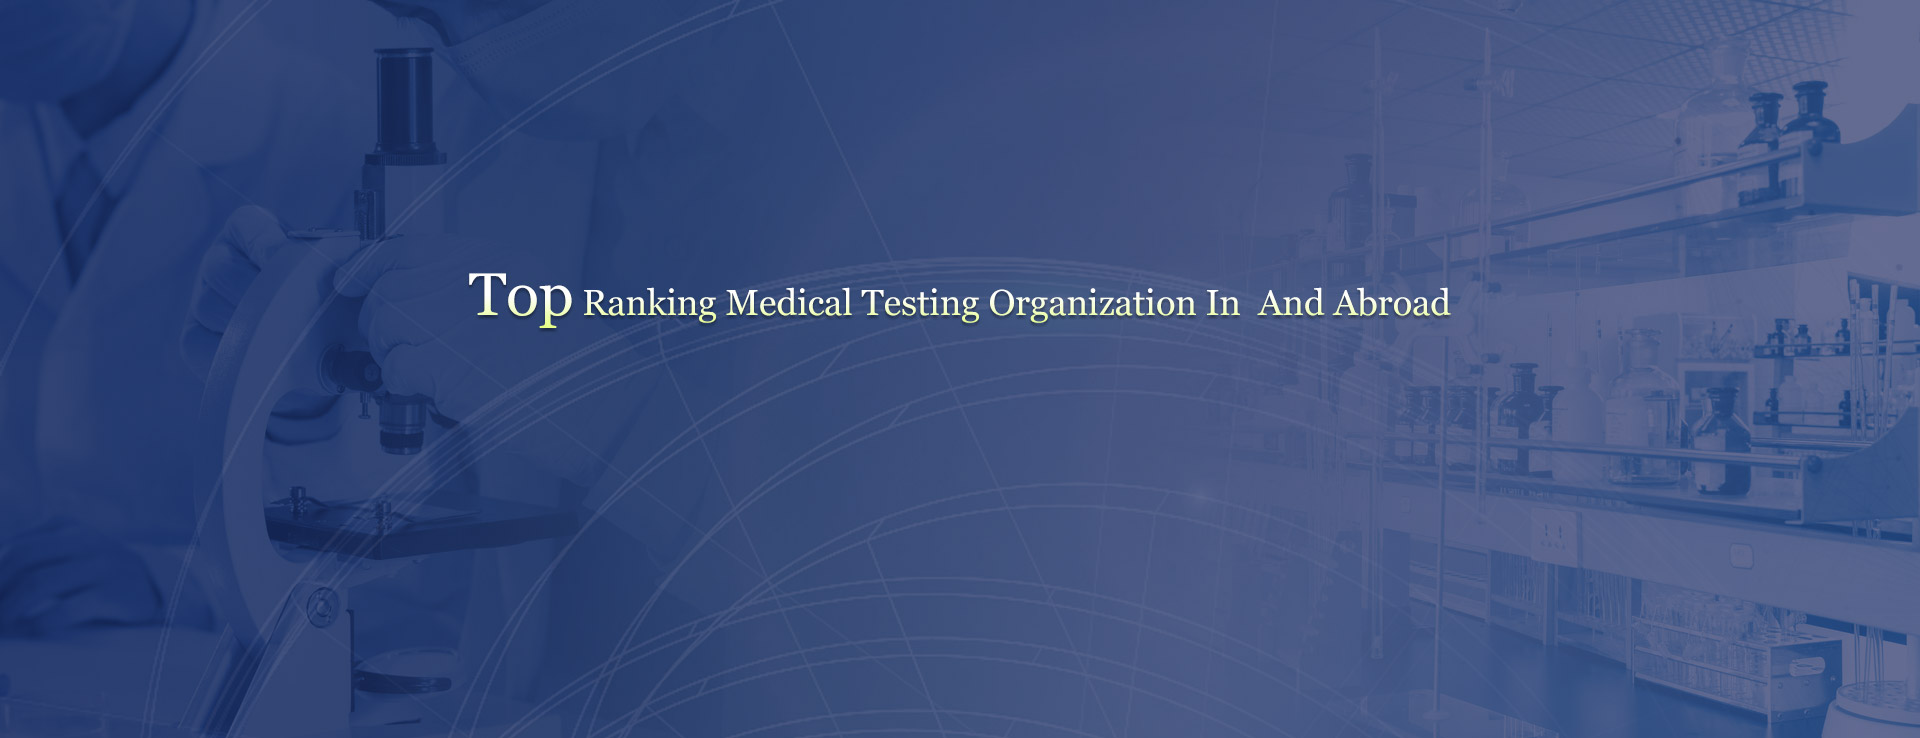 Top Ranking Medical Testing Or